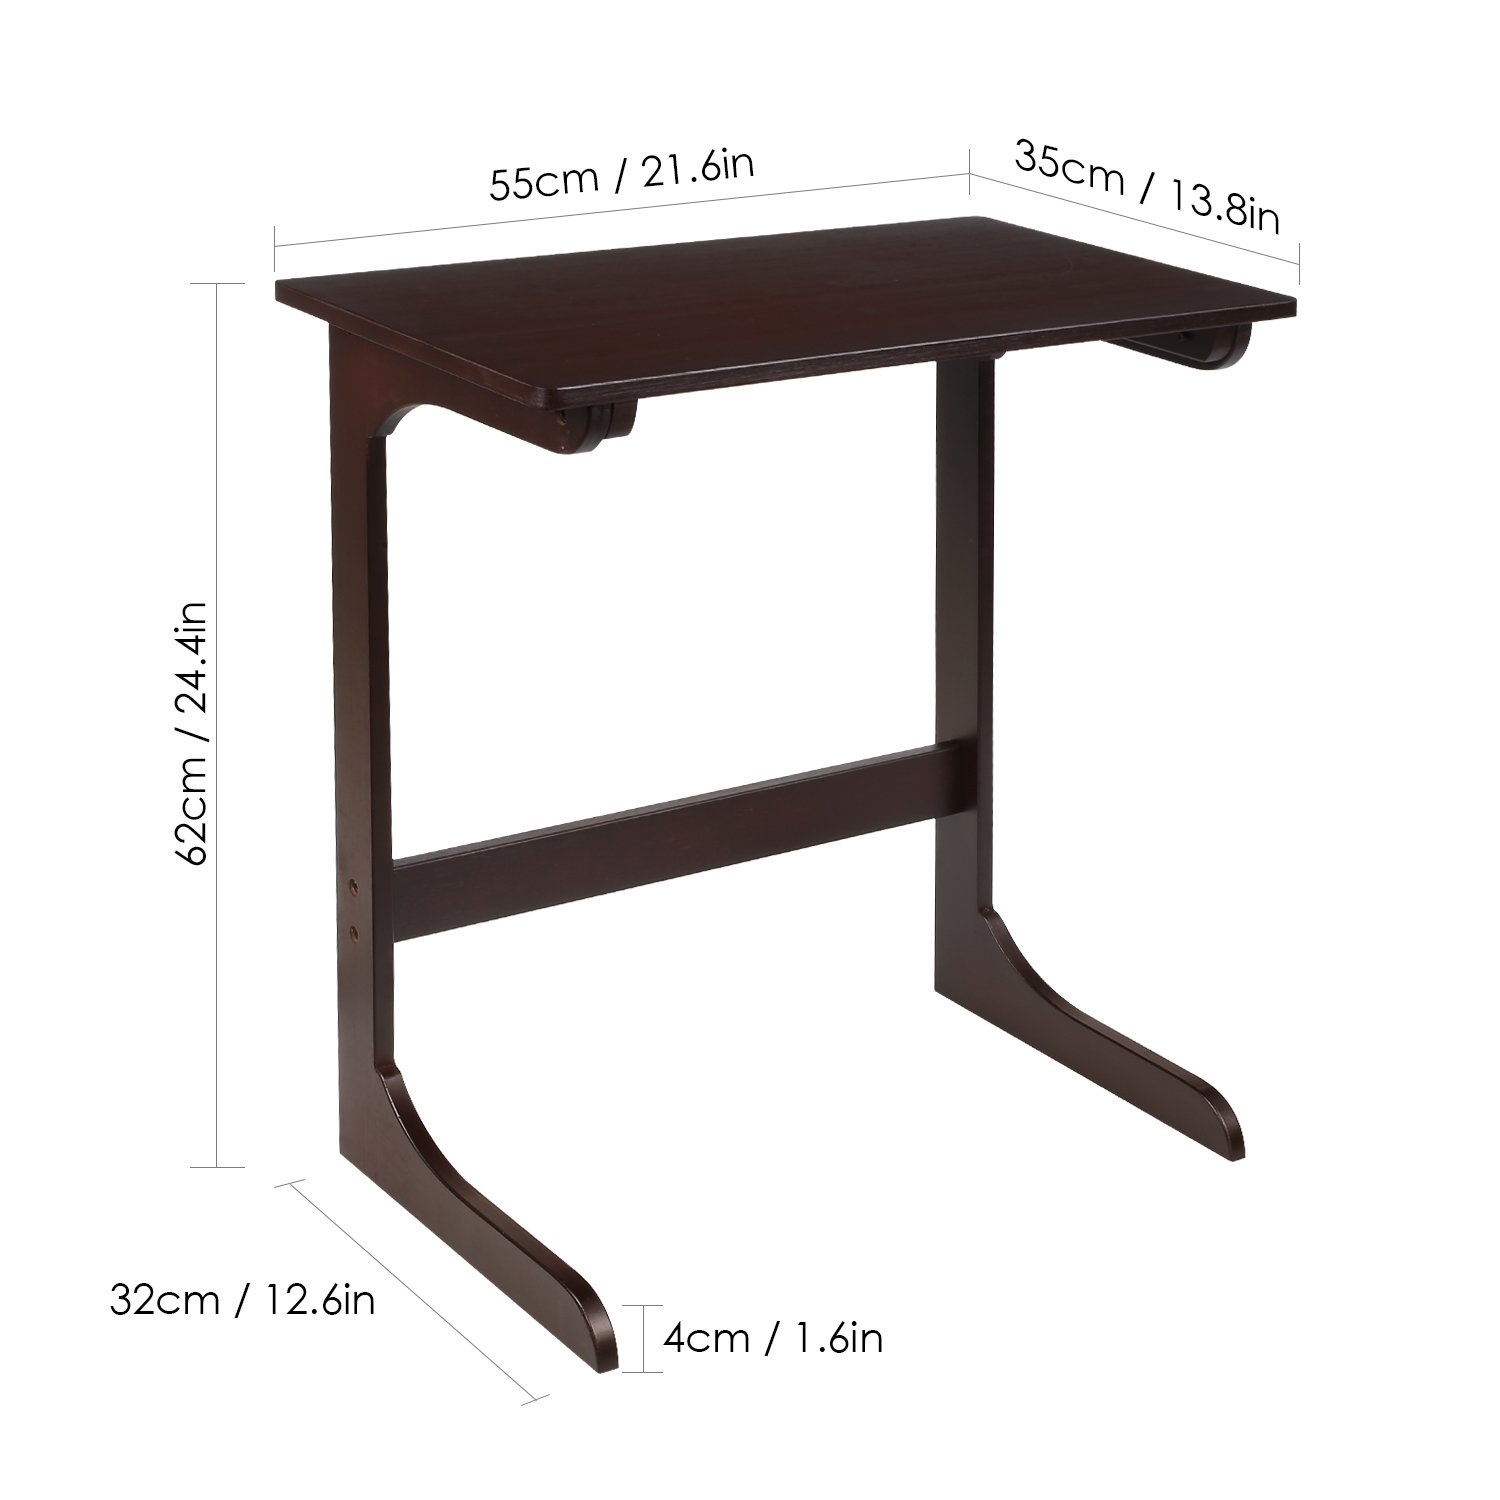 homfa bamboo snack table sofa couch coffee end accent side laptop desk modern furniture for home office retro color kitchen dining pier one chair covers round glass top metal